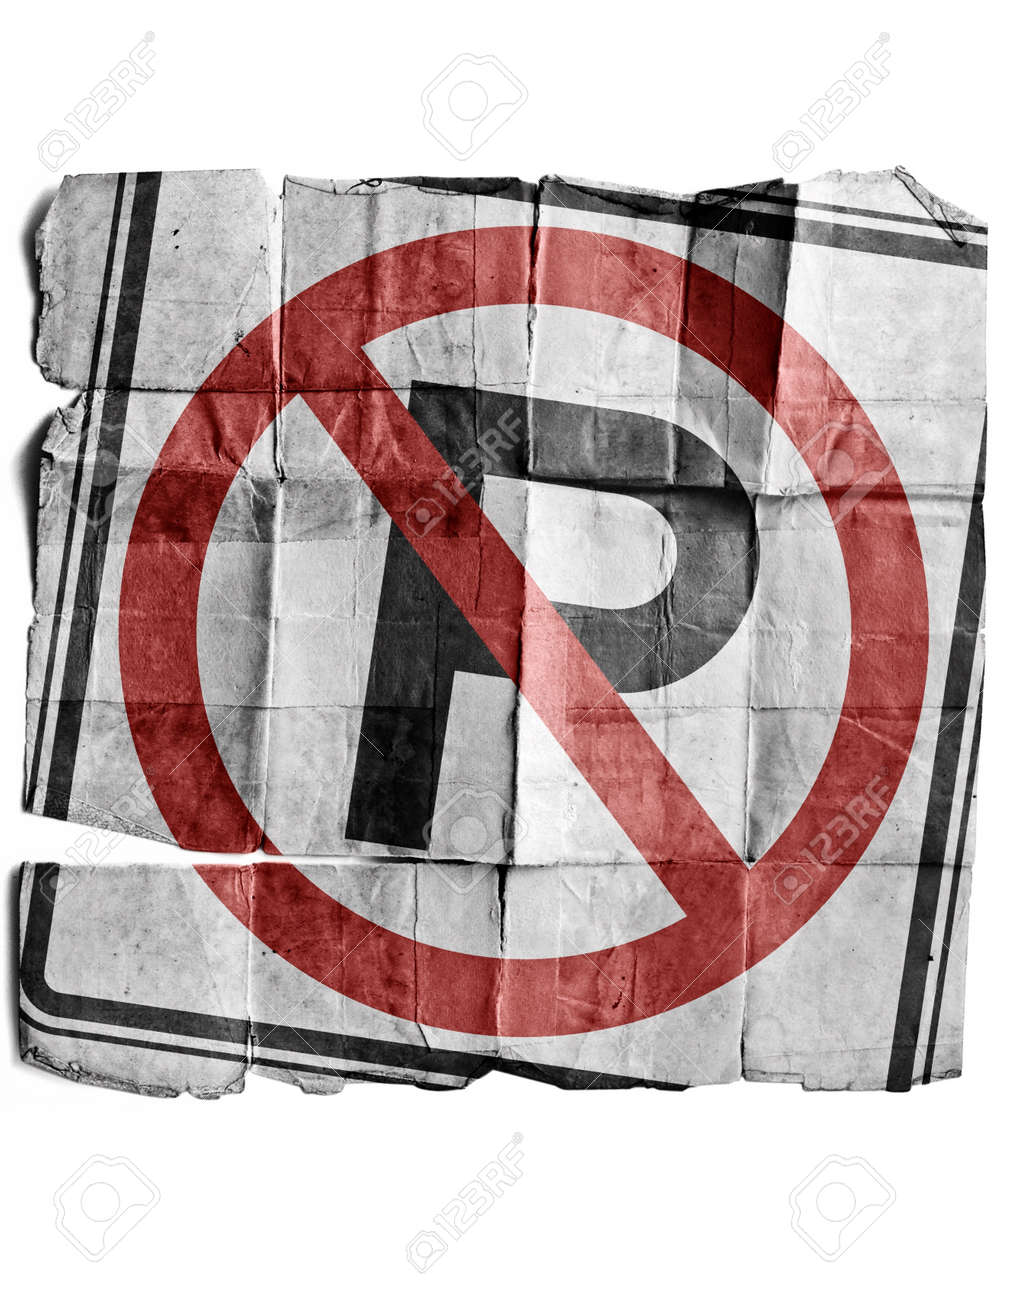 No parking sign Stock Photo - 17463256